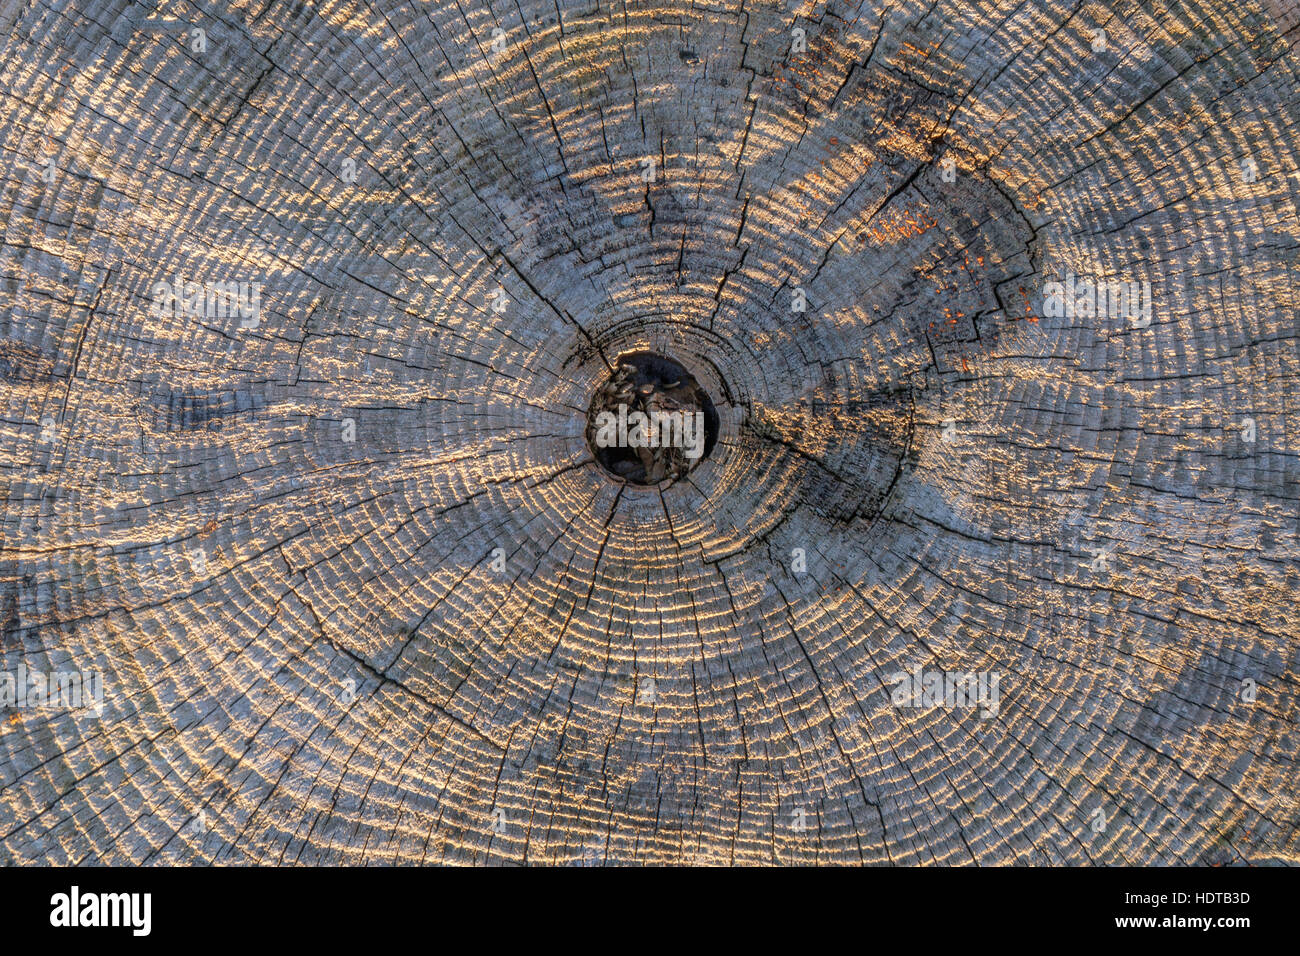 A transect of a tree trunk with concentric year rings, old, weathered and gray. - Stock Image